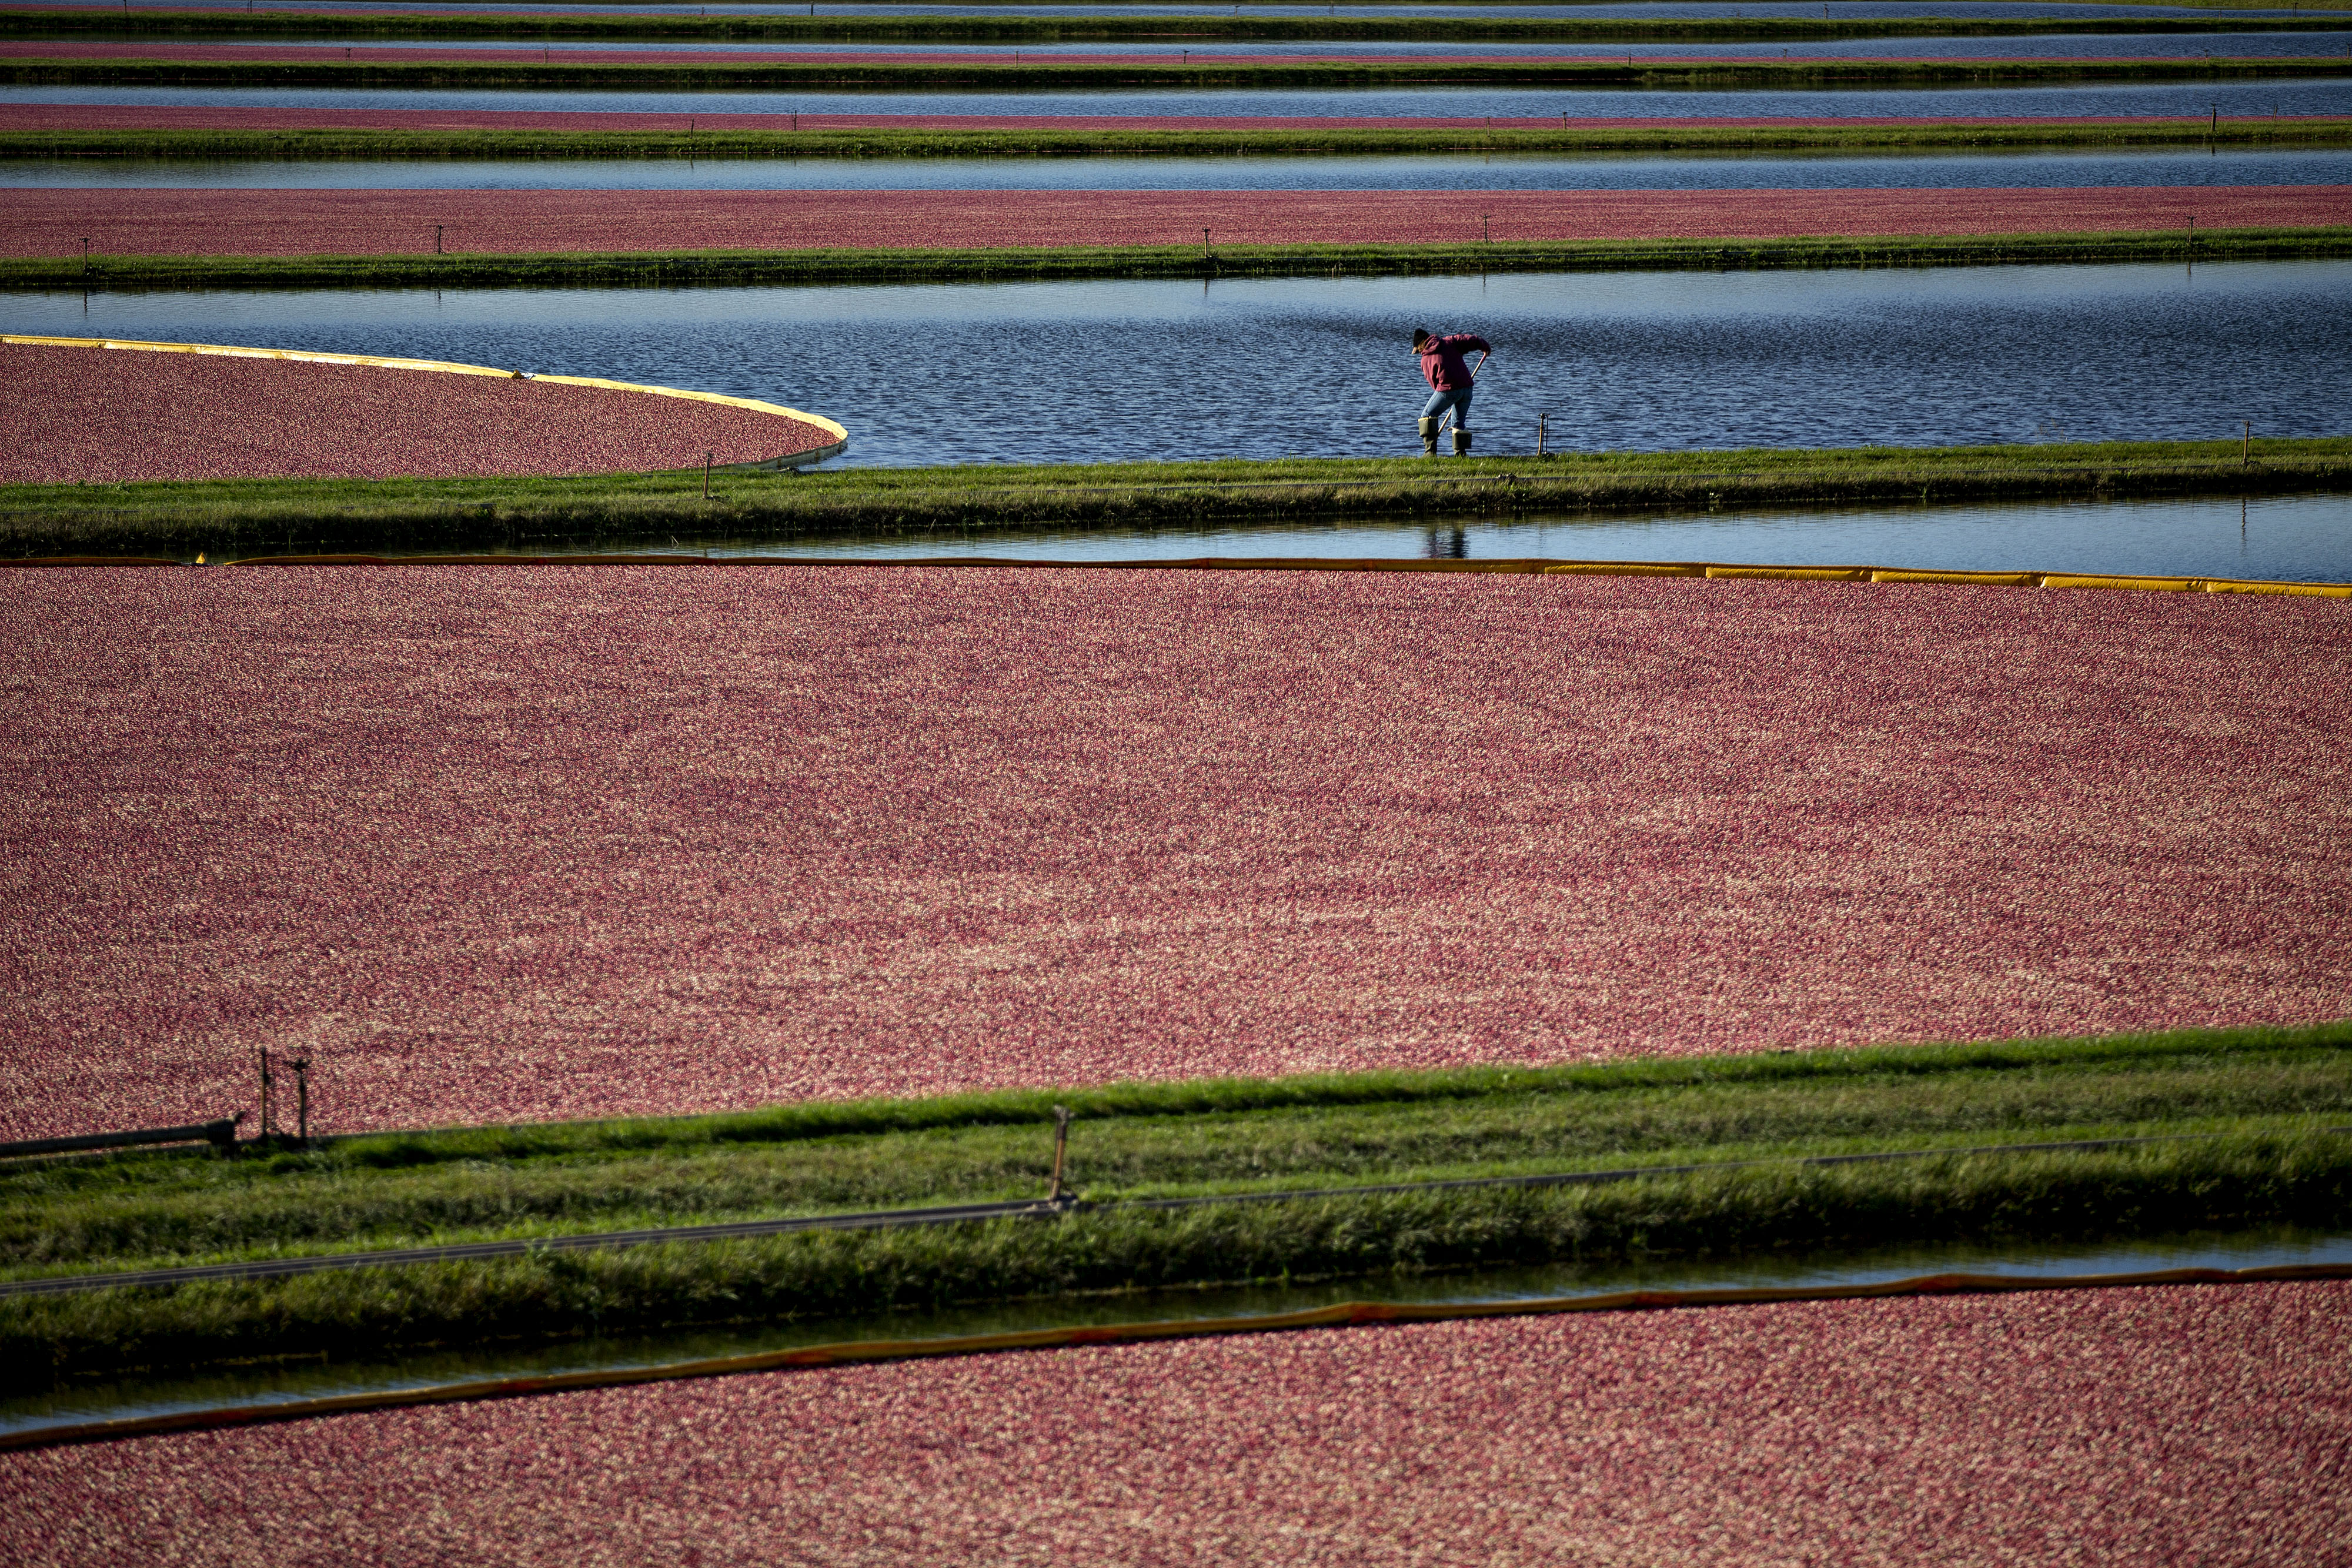 A Cranberry Harvest As Wisconsin Leads The U.S. In Production